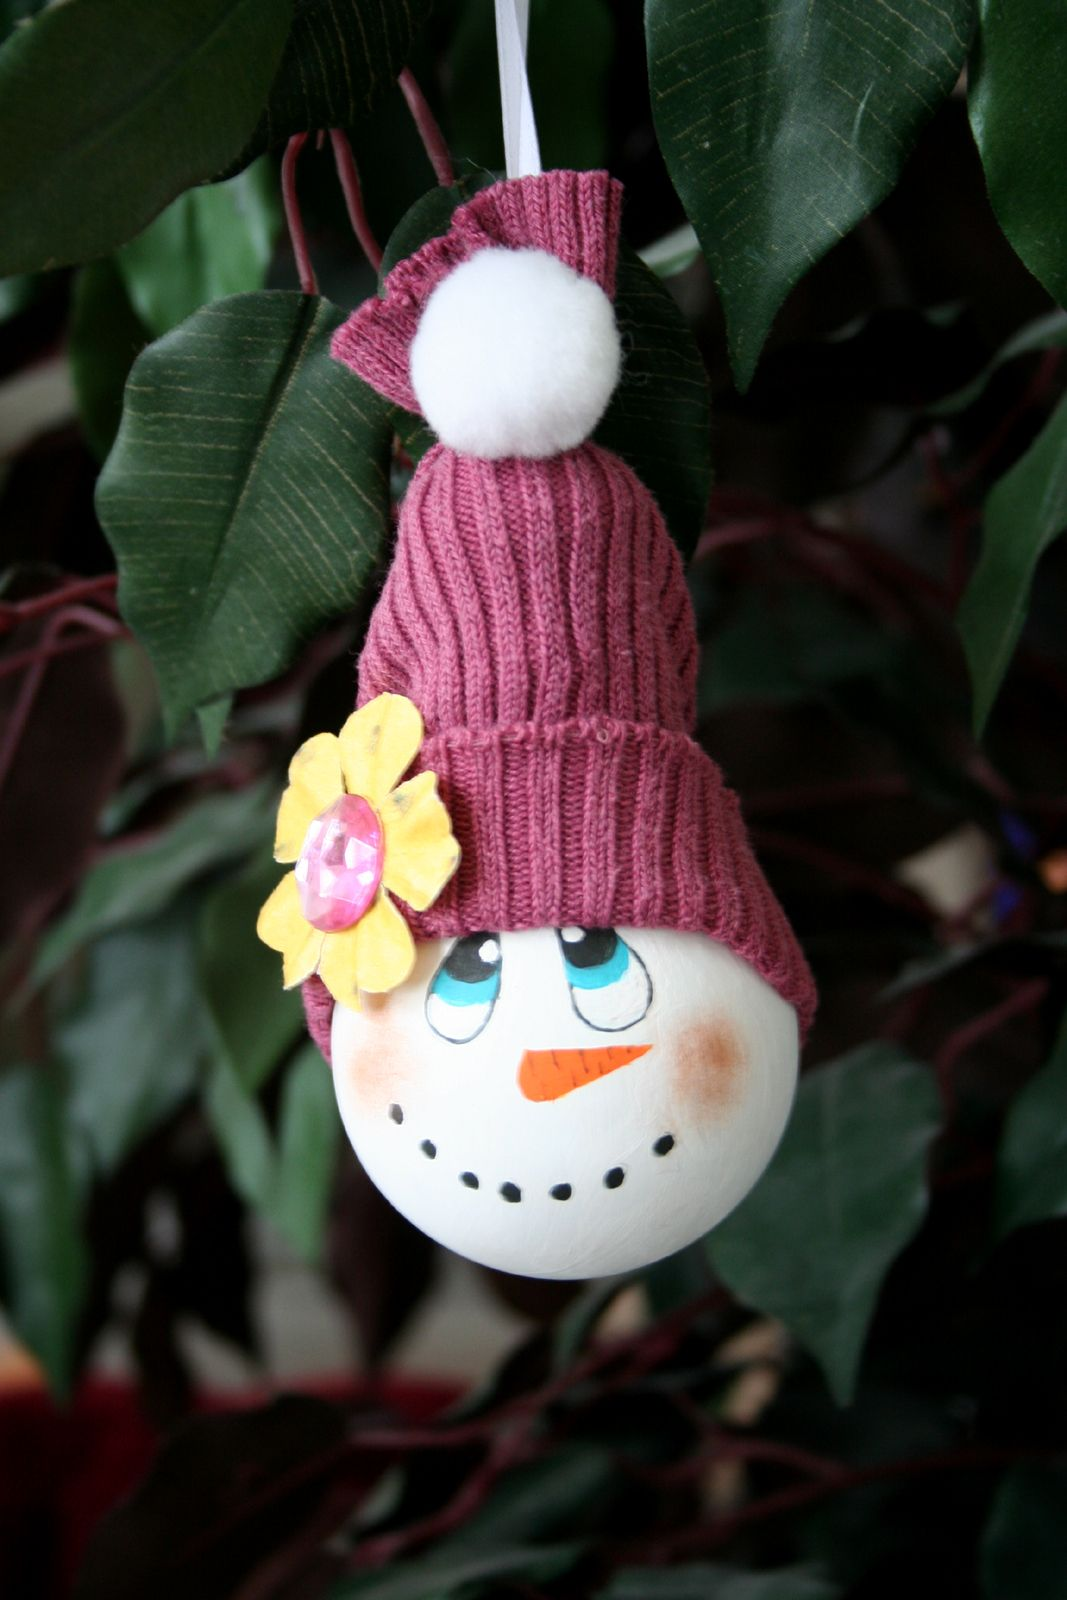 Making Christmas Ornaments Out Of Light Bulbs - I am always looking for things around the house to create new and fun ornaments for the holidays this one is from a burnt out light bulb easy and a great